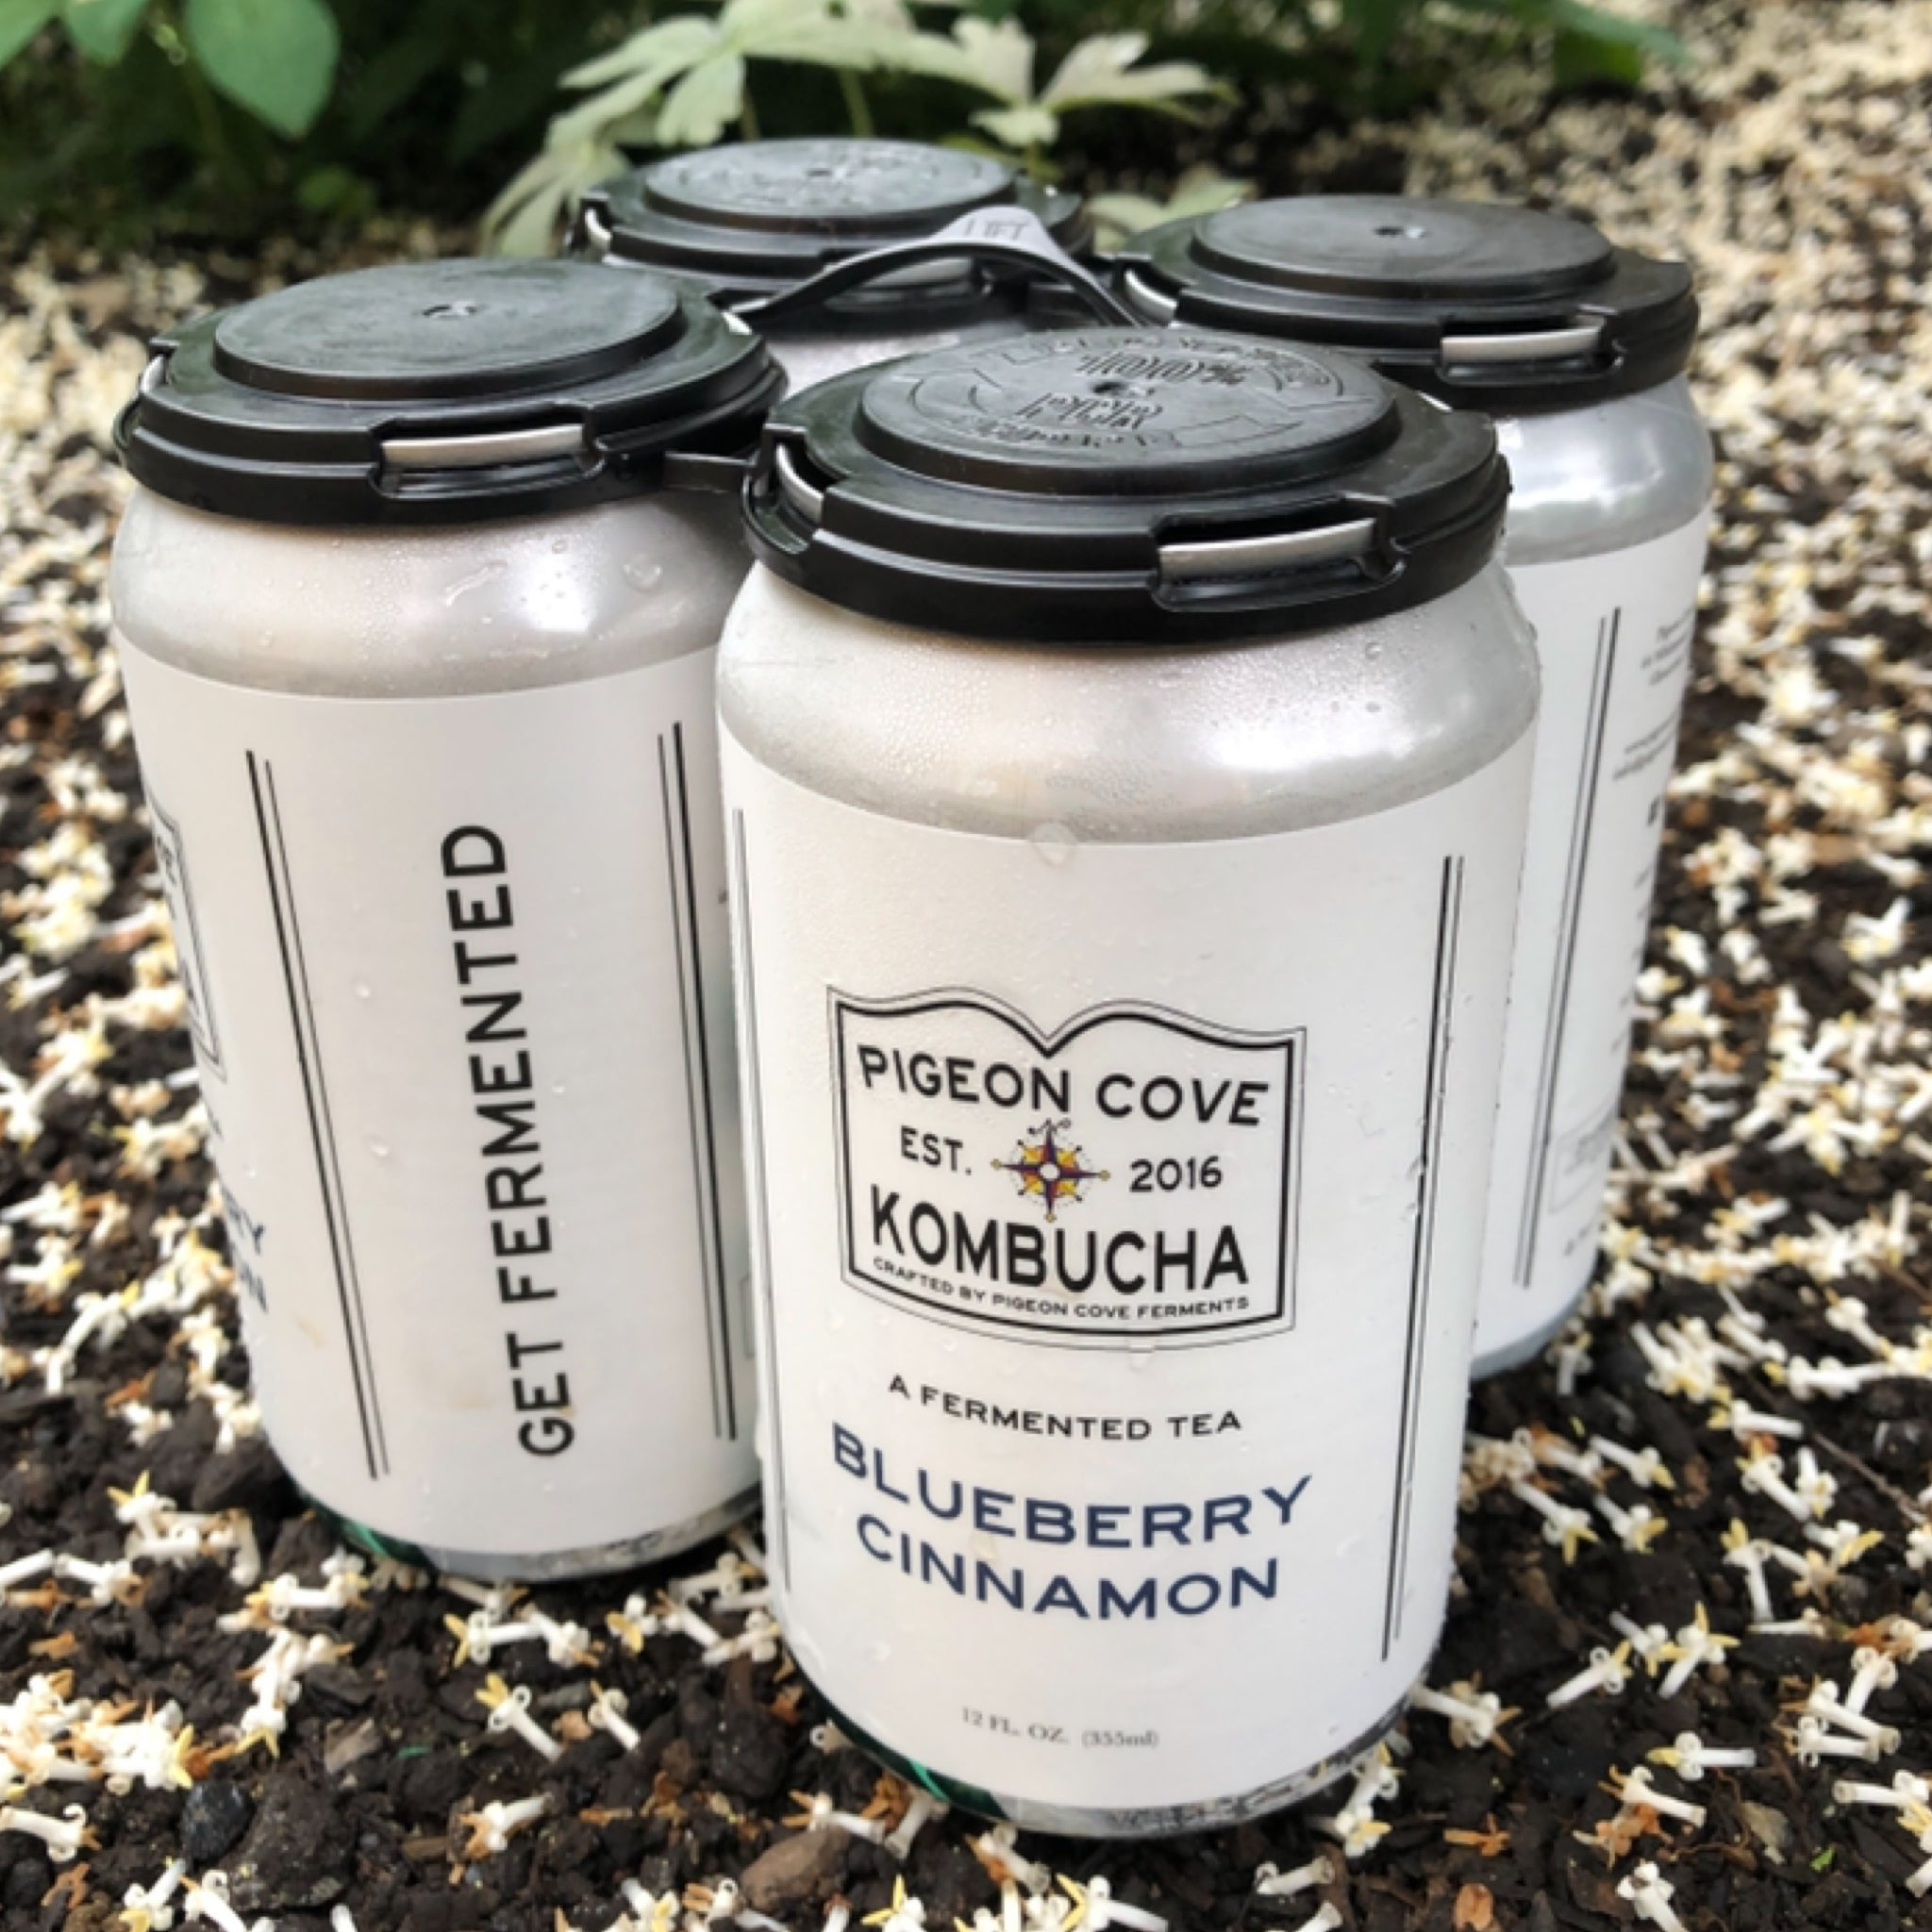 Blueberry Cinnamon Kombucha